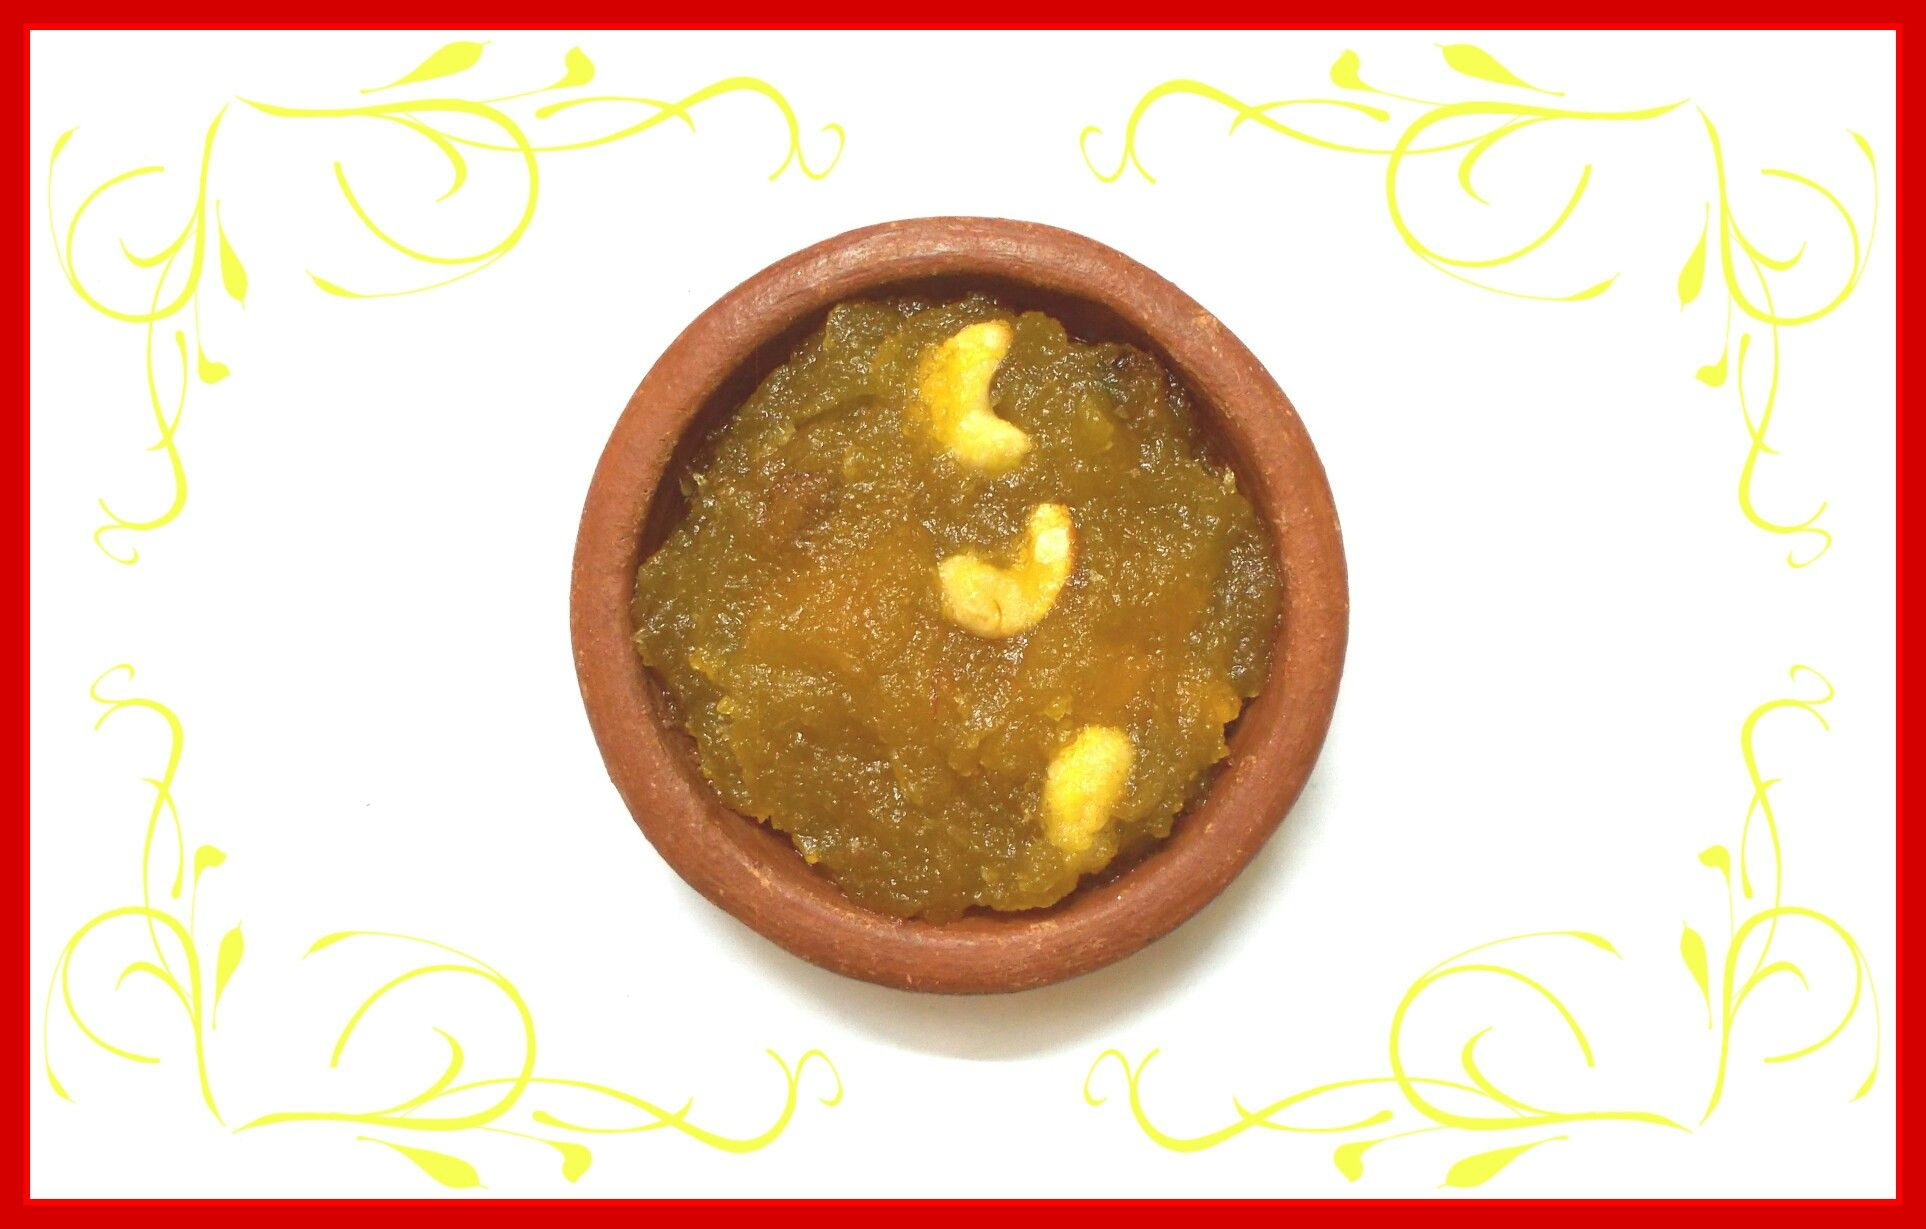 Kashi halwa recipe taken from youtube channel rajshri food recipe taken from youtube channel rajshri food forumfinder Image collections